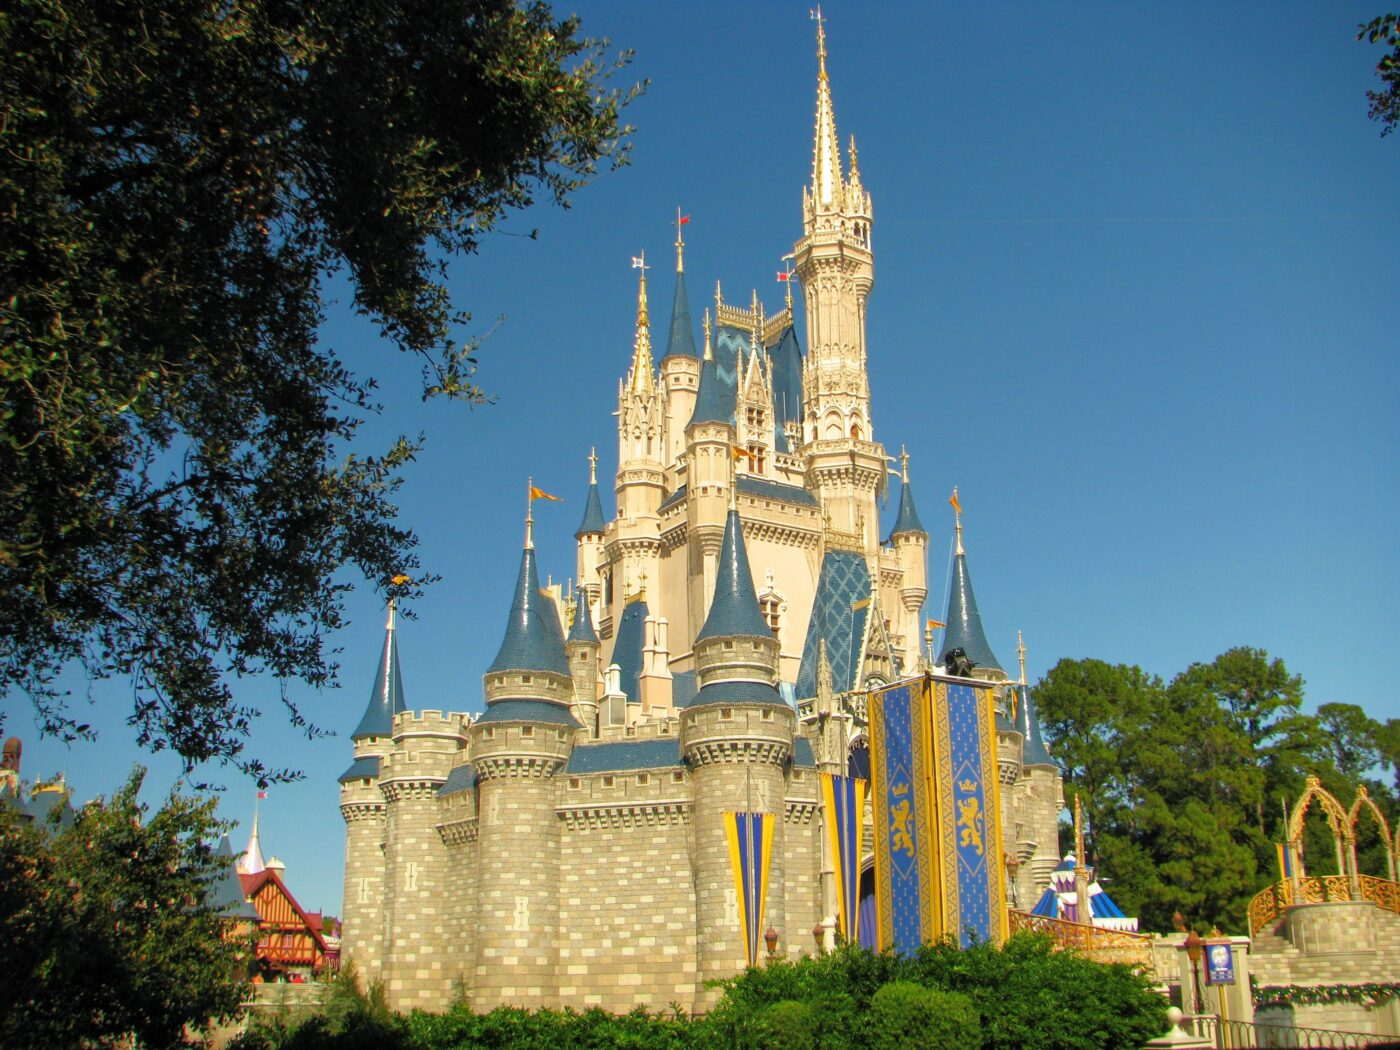 Avoiding The Crowds – When Is The Best Times To Go To Disney World?